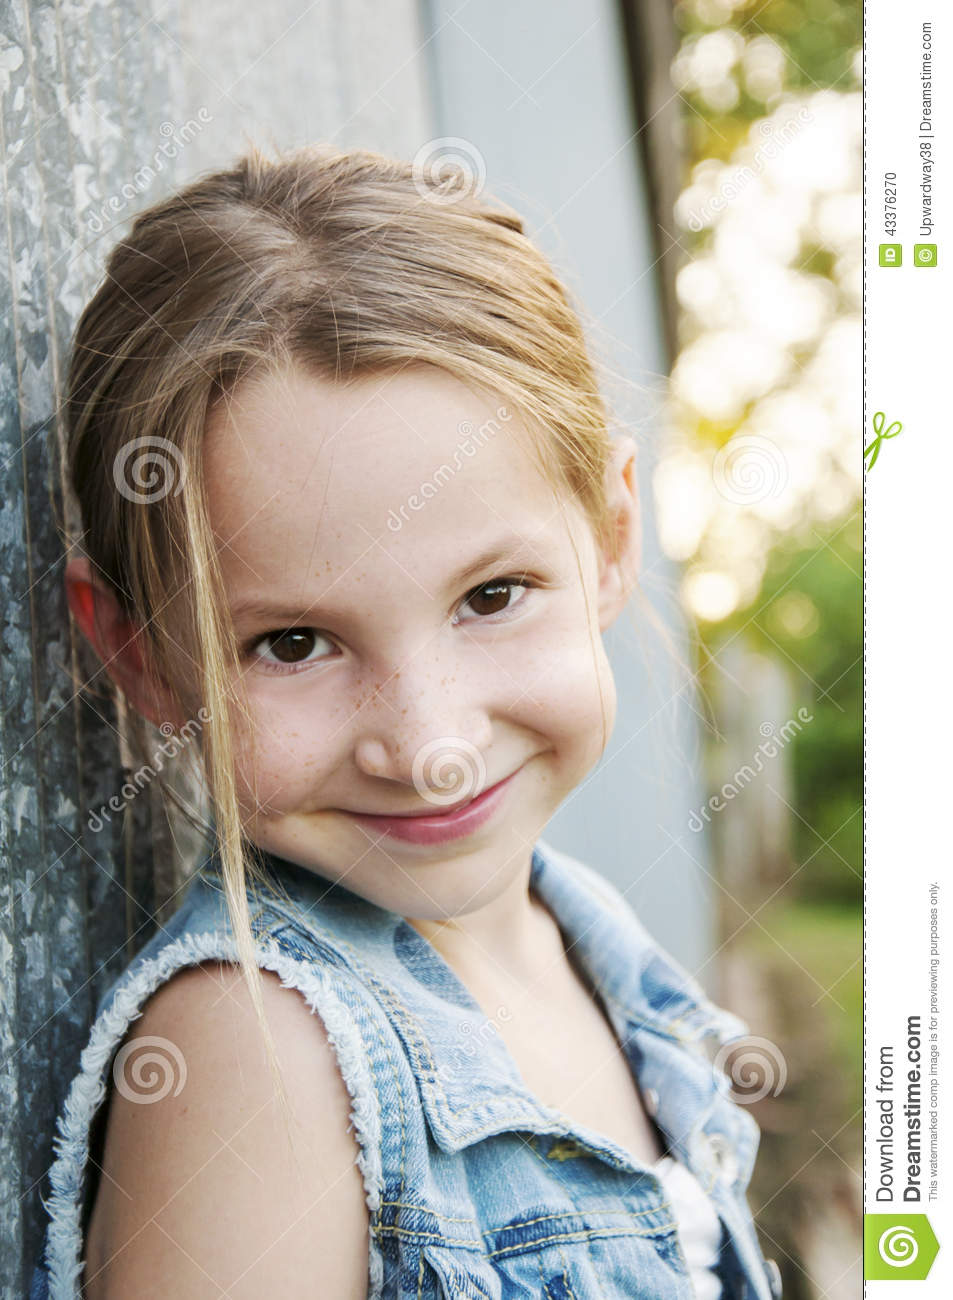 Smiling Pre Teen In Denim Jacket Stock Photo Image 43376270